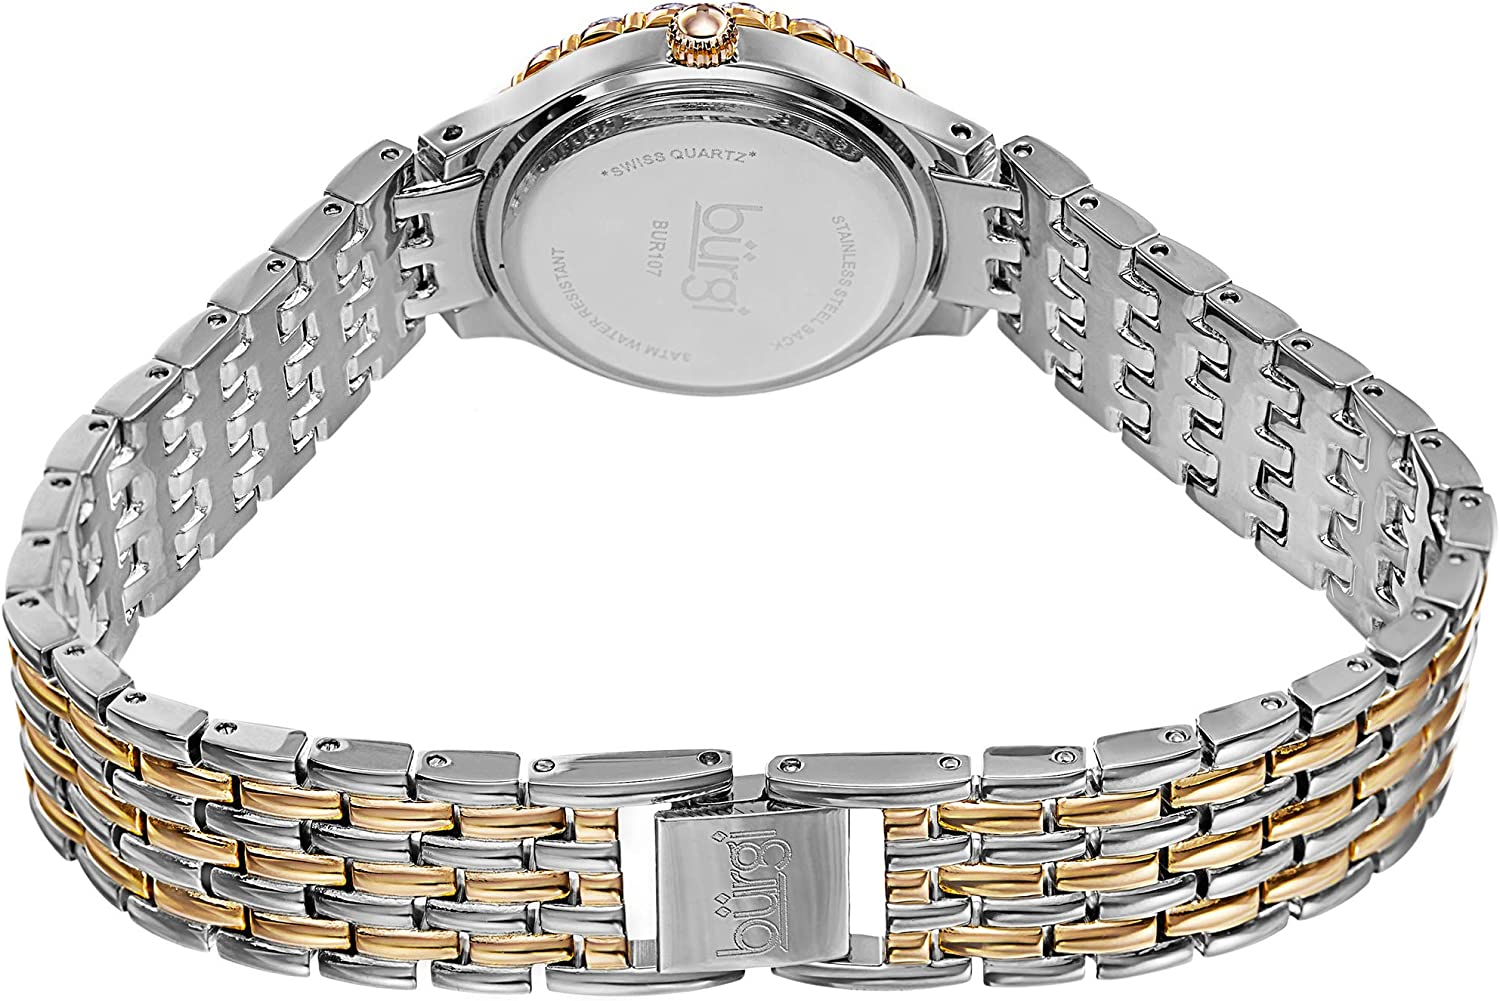 Burgi Women's Crystal Accented Watch - Mother of Pearl Dial Stainless Steel Bracelet - BUR107 Silver/Yellow Gold